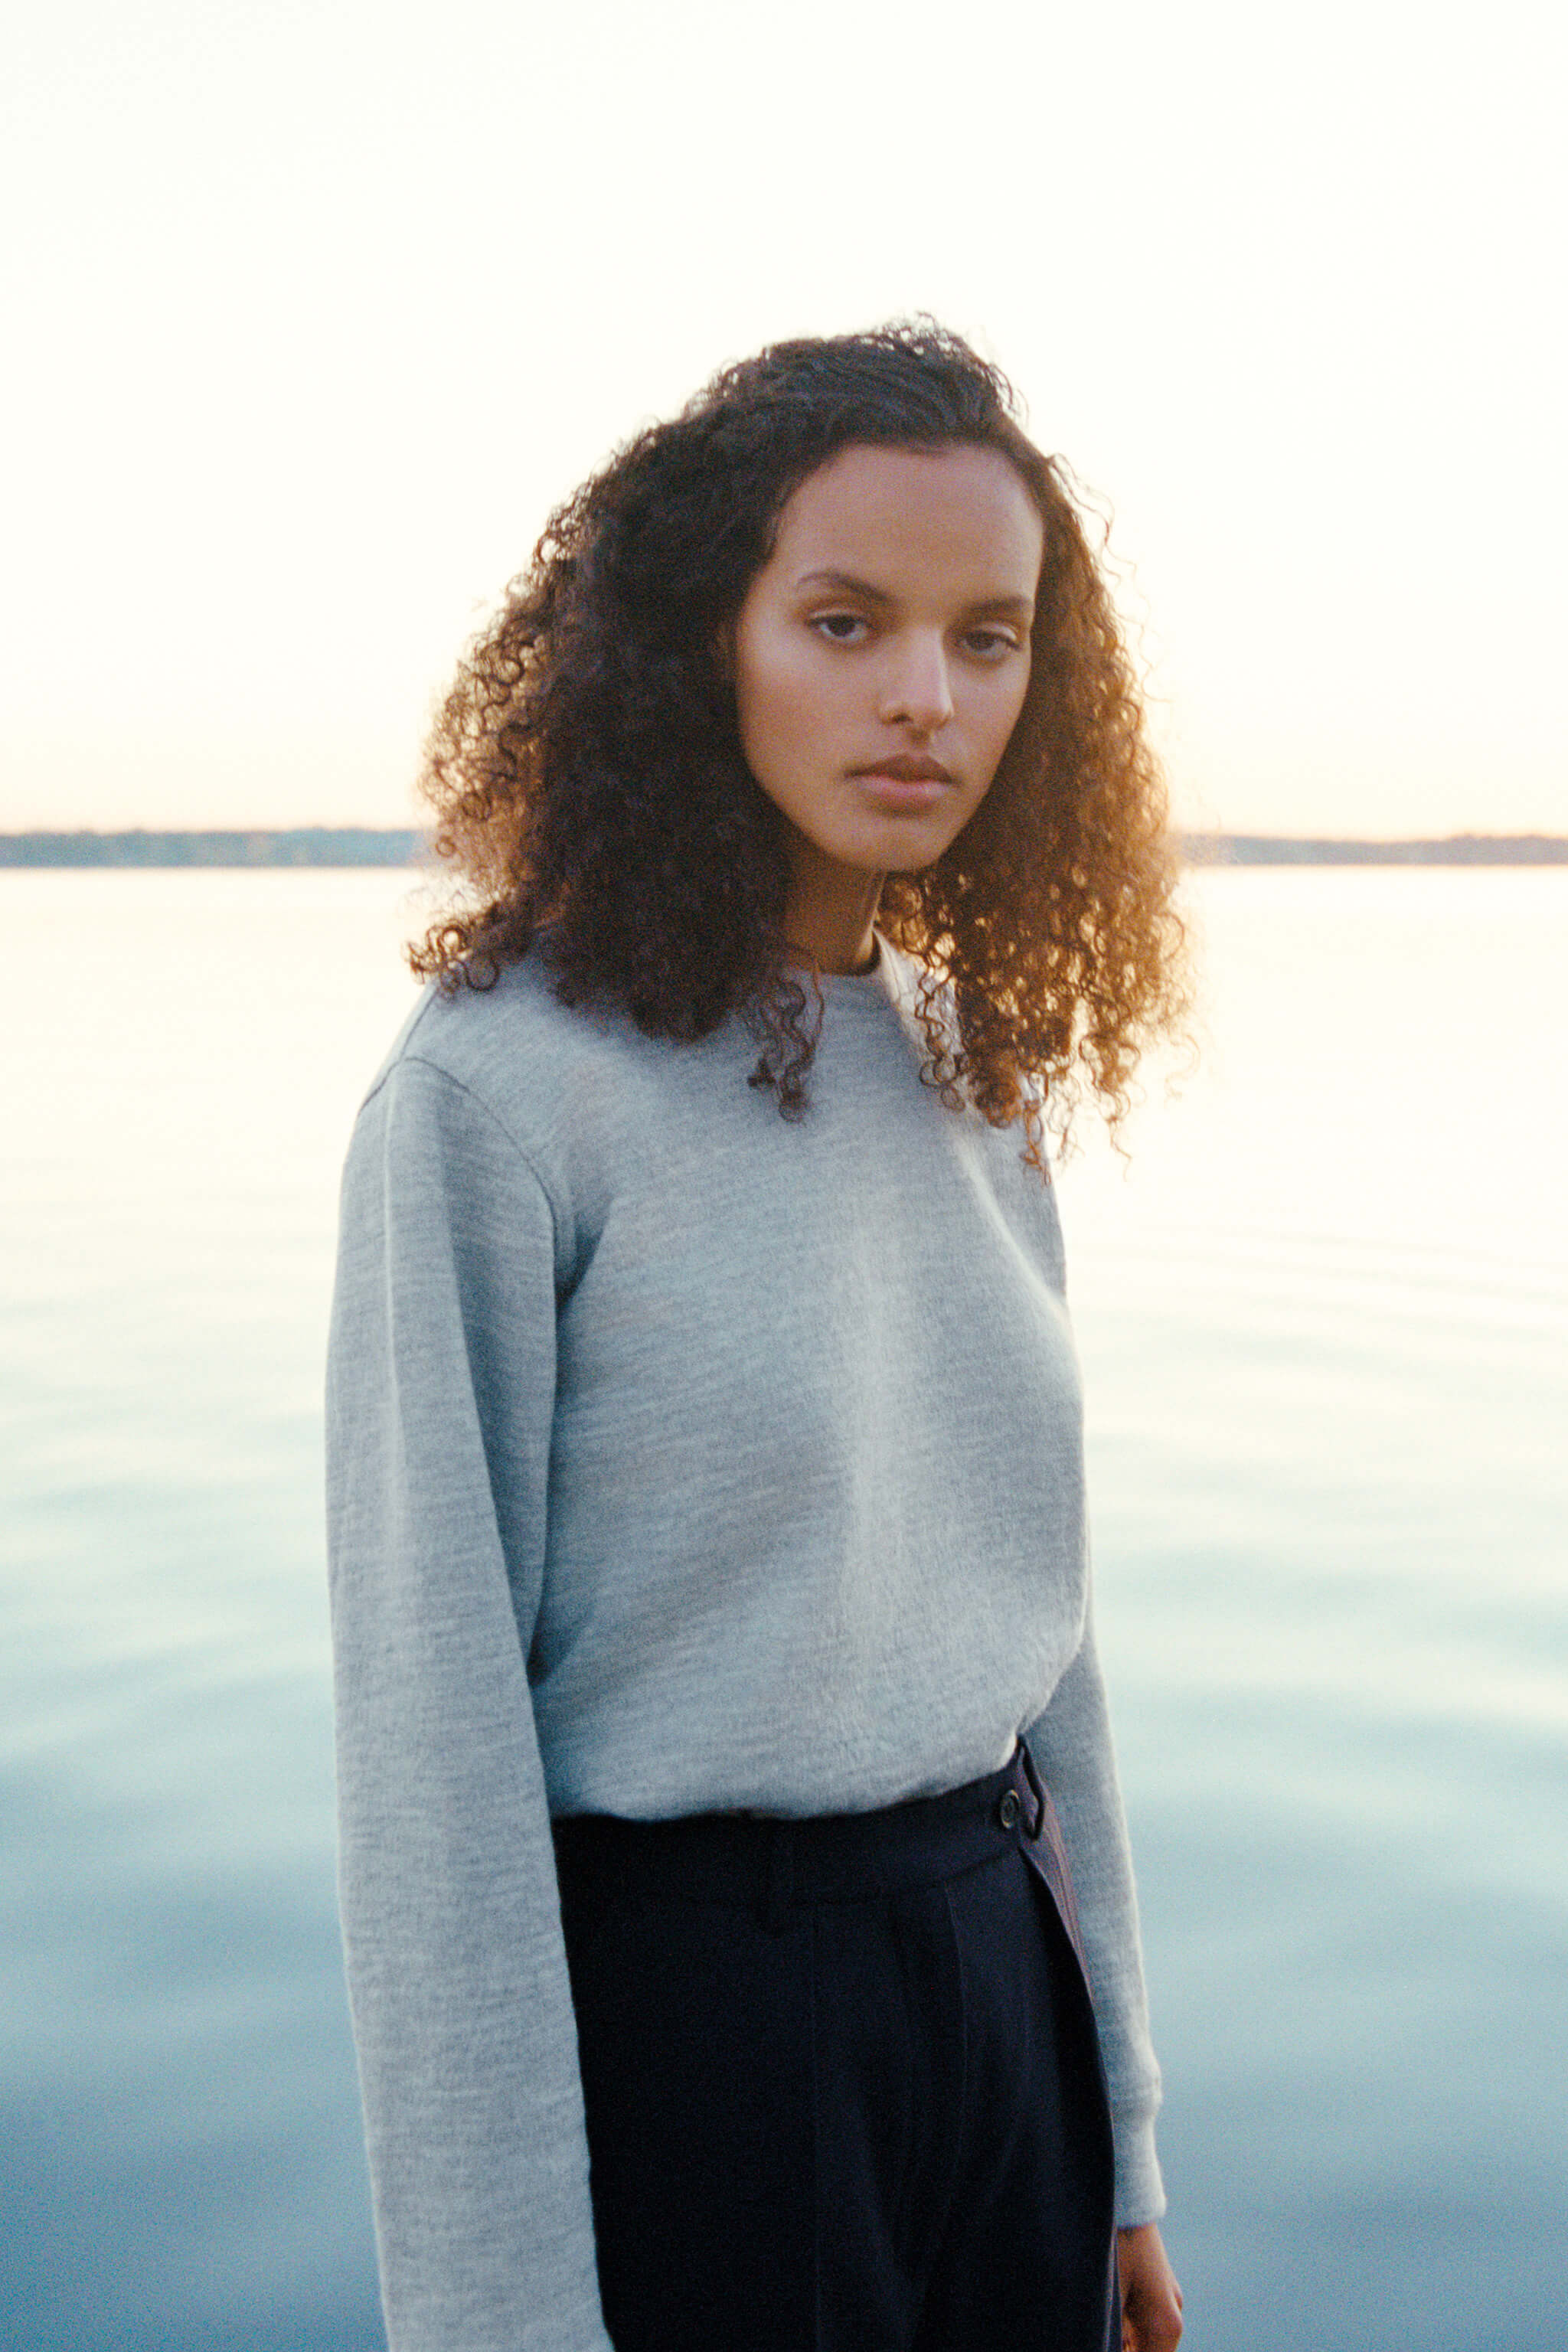 A woman of Swedish-African descent wearing a sweatshirt looks into the camera with the Stockholm archipelago in the background